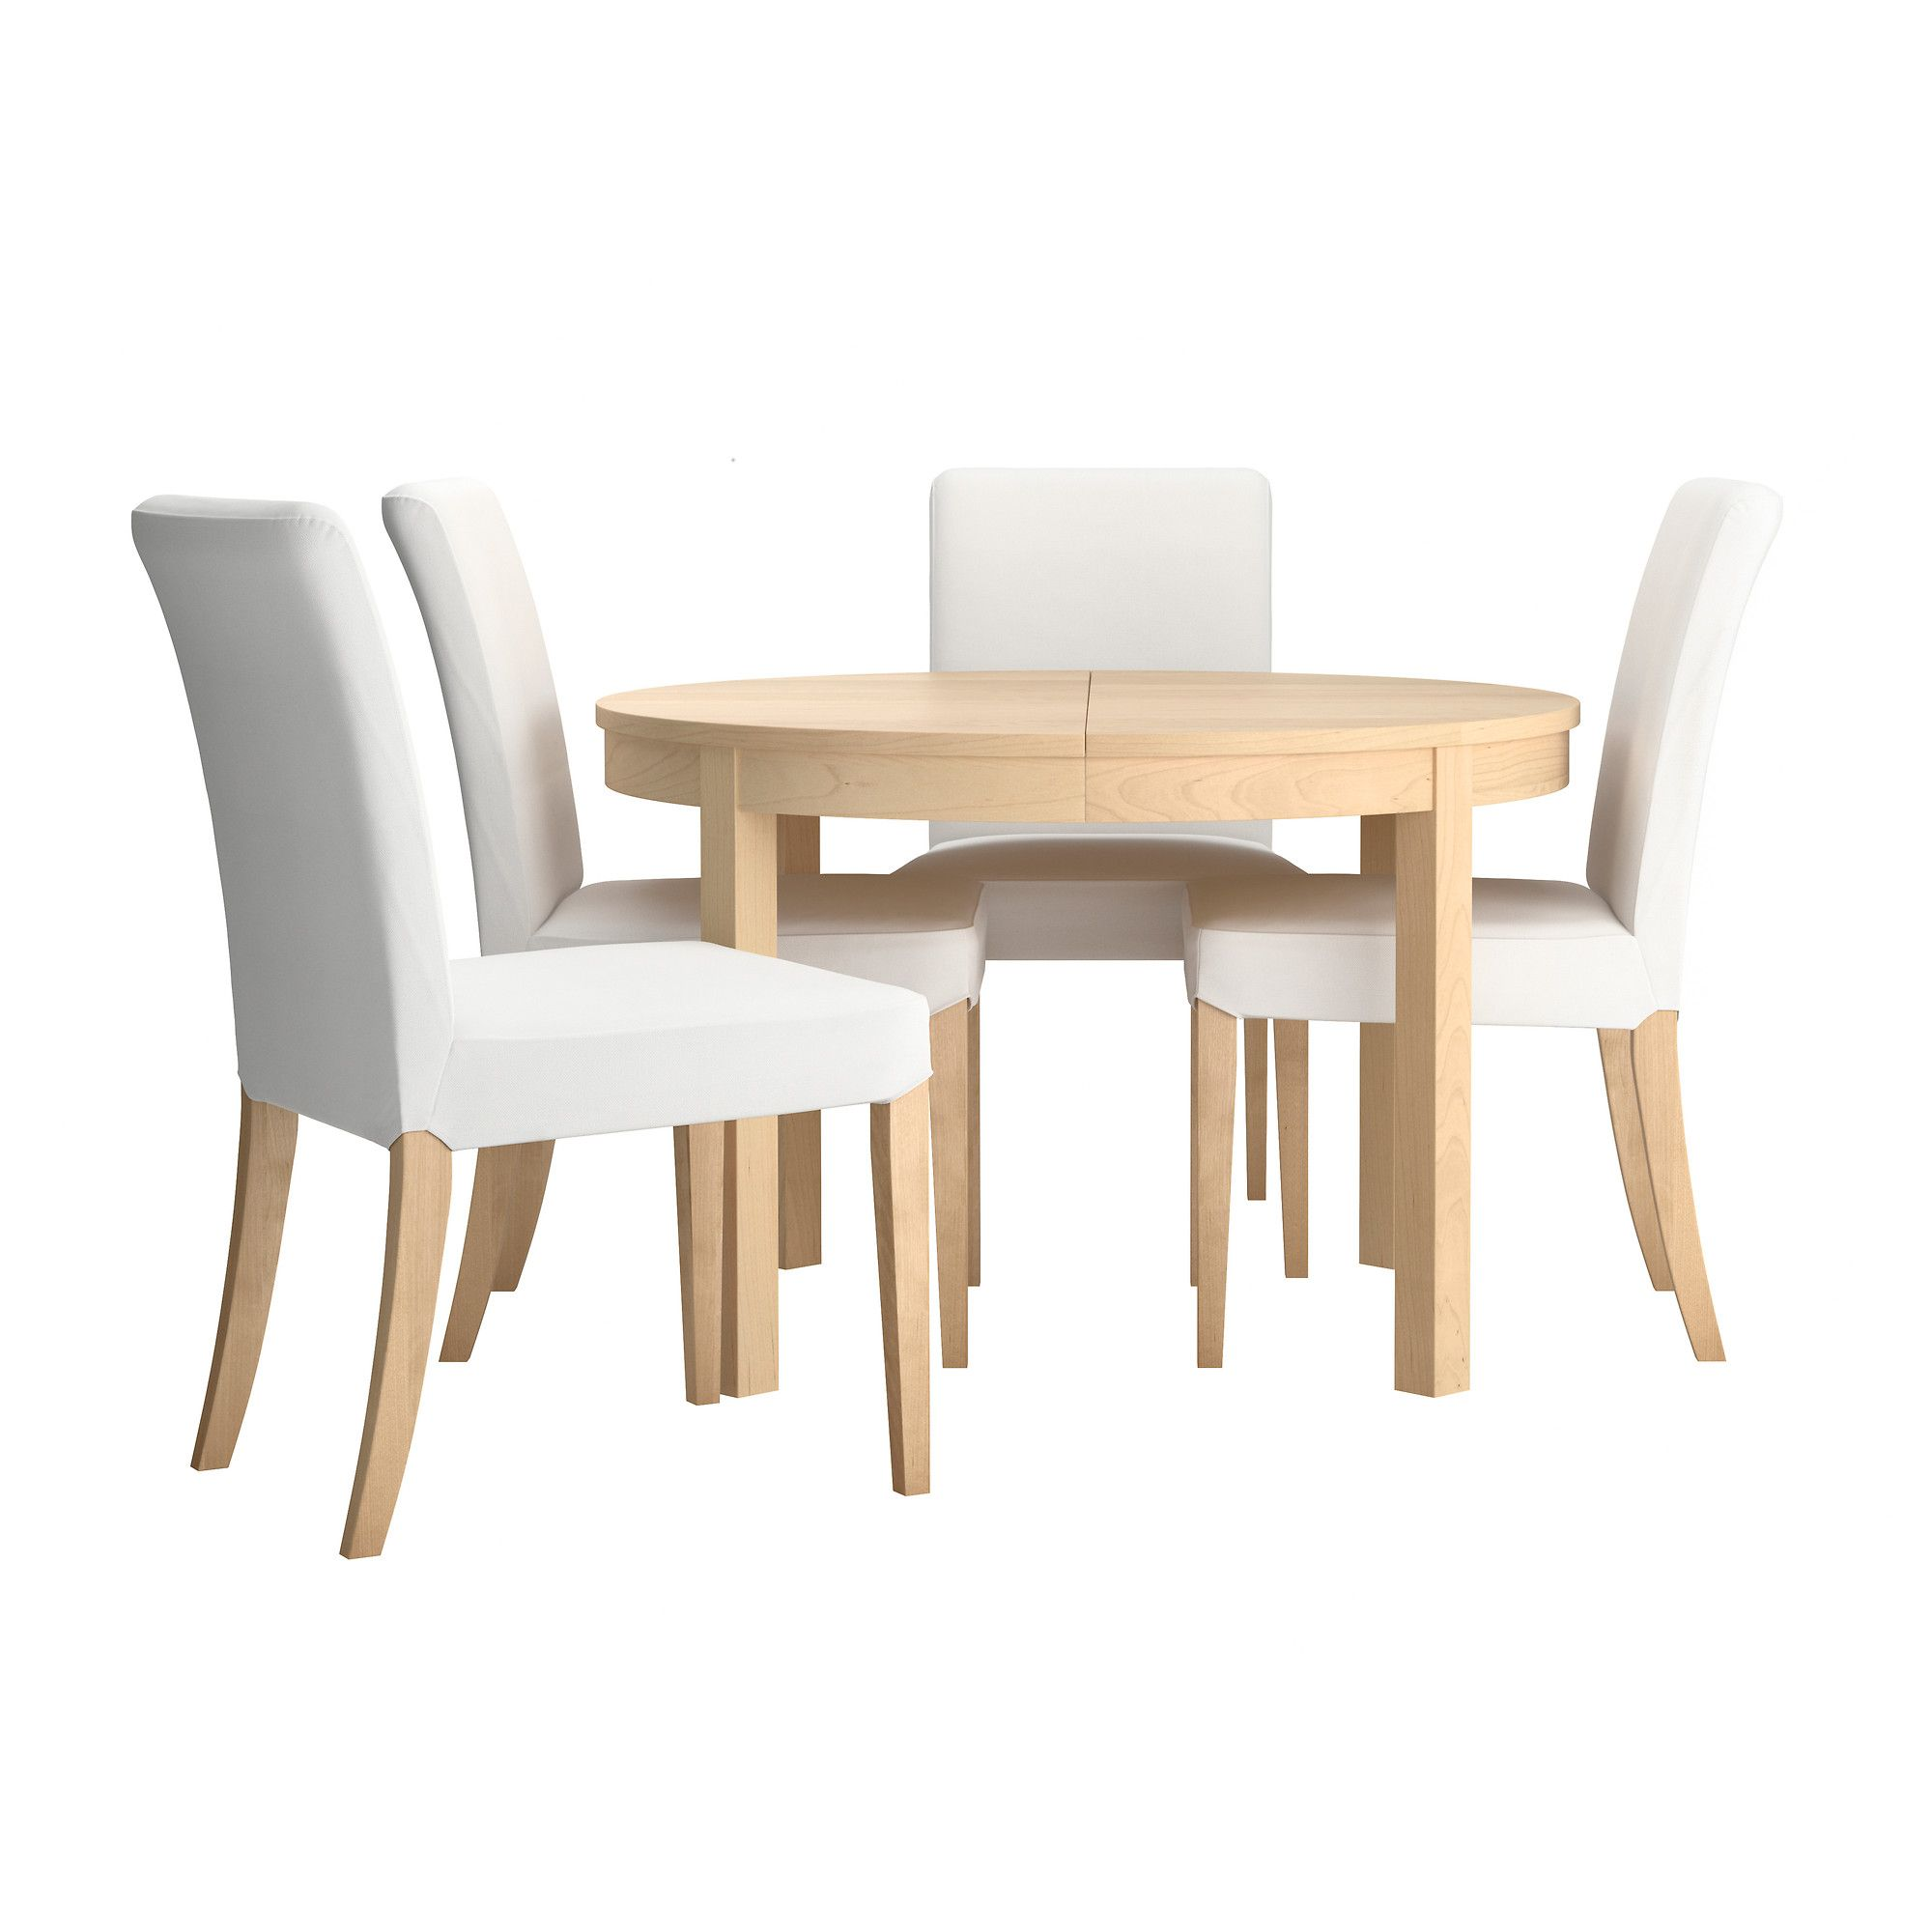 Extendable Dining Table Ikea Bjursta/henriksdal Table And 4 Chairs - Gobo White, Birch